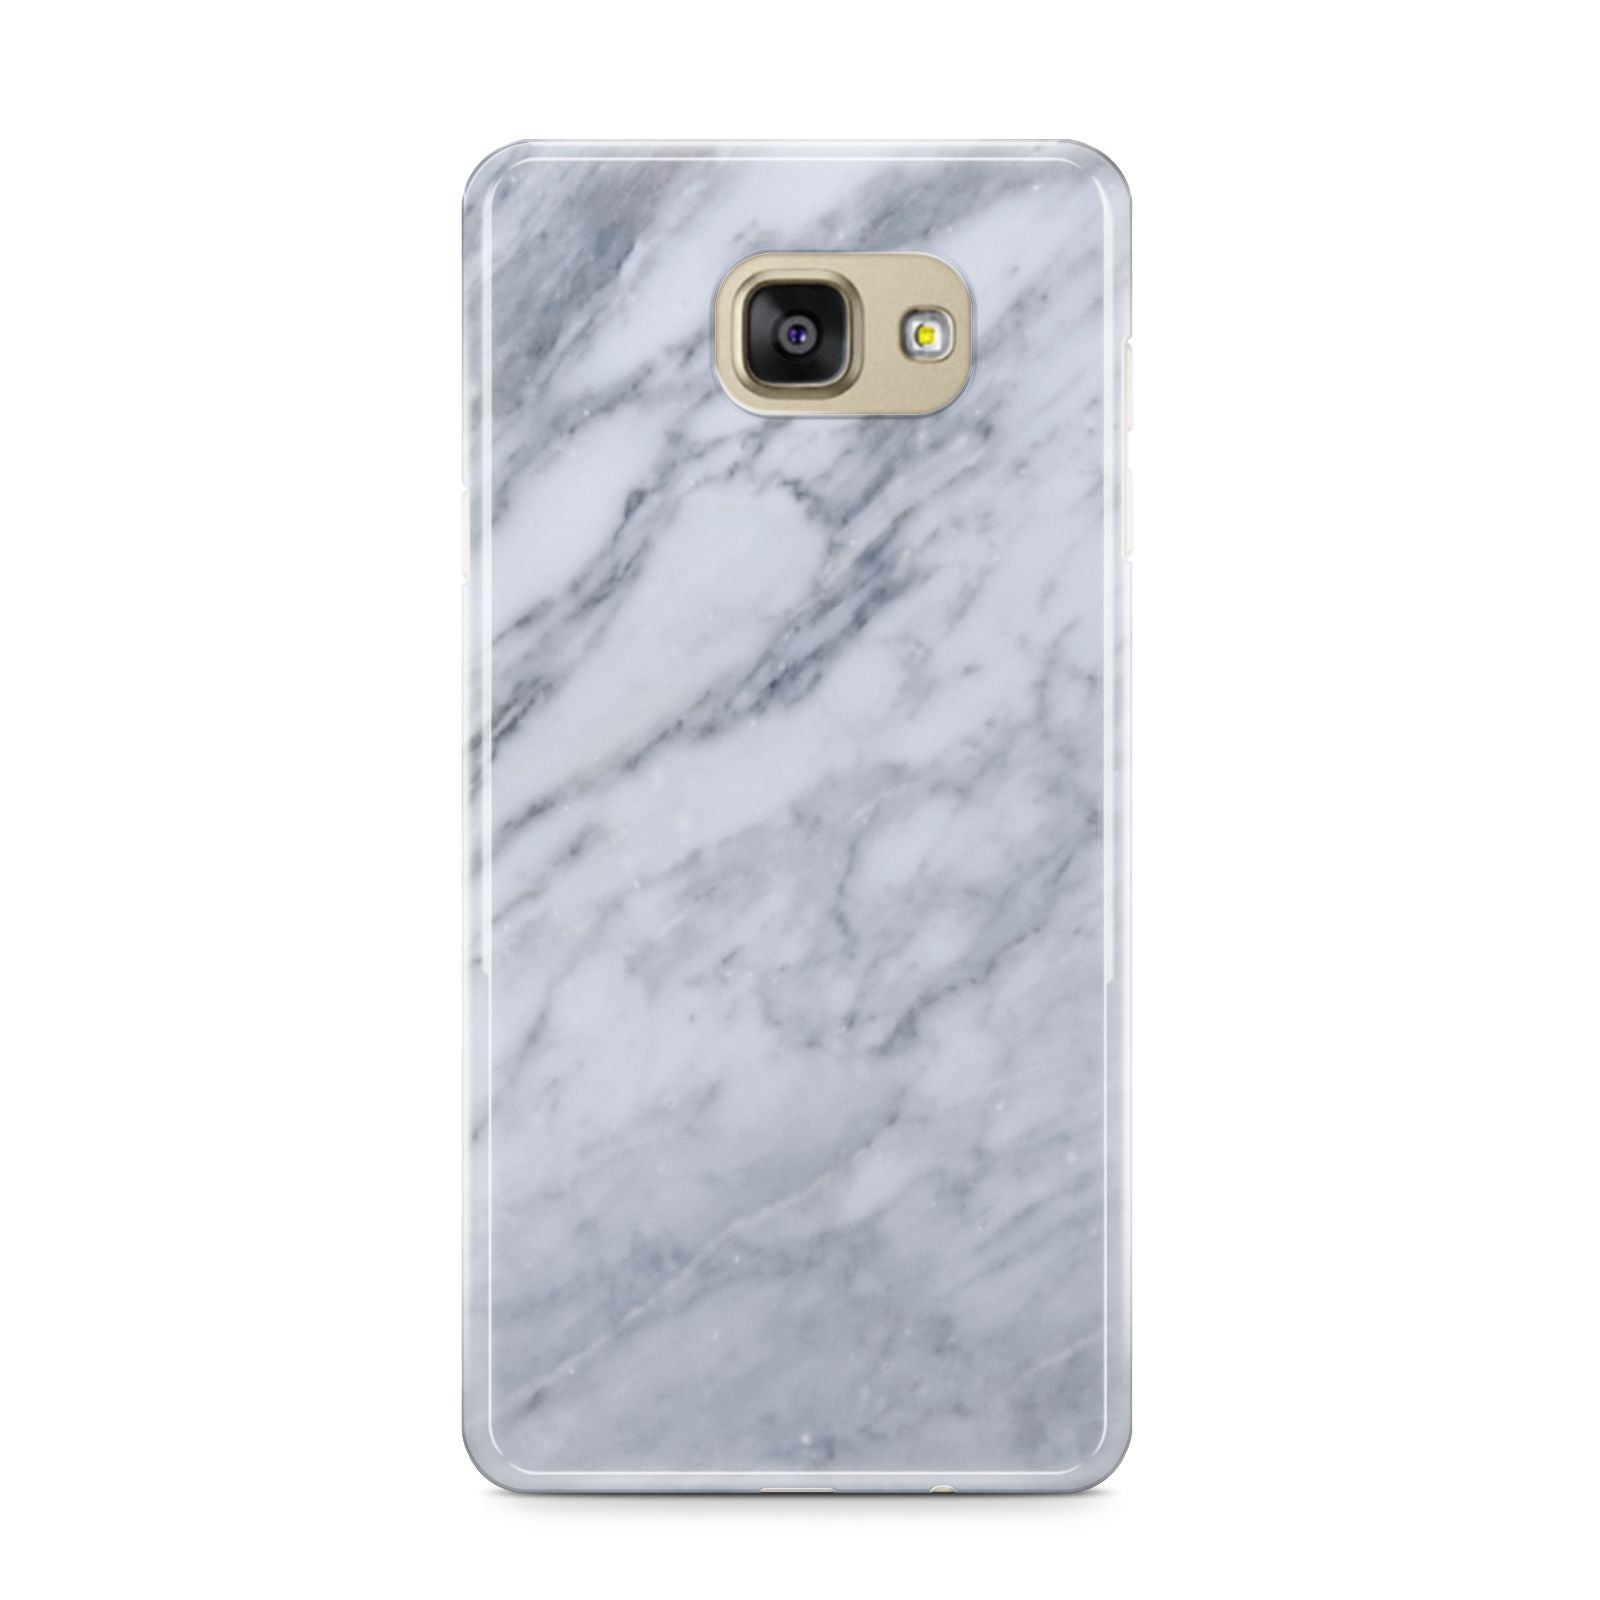 Faux Marble Italian Grey Samsung Galaxy A9 2016 Case on gold phone